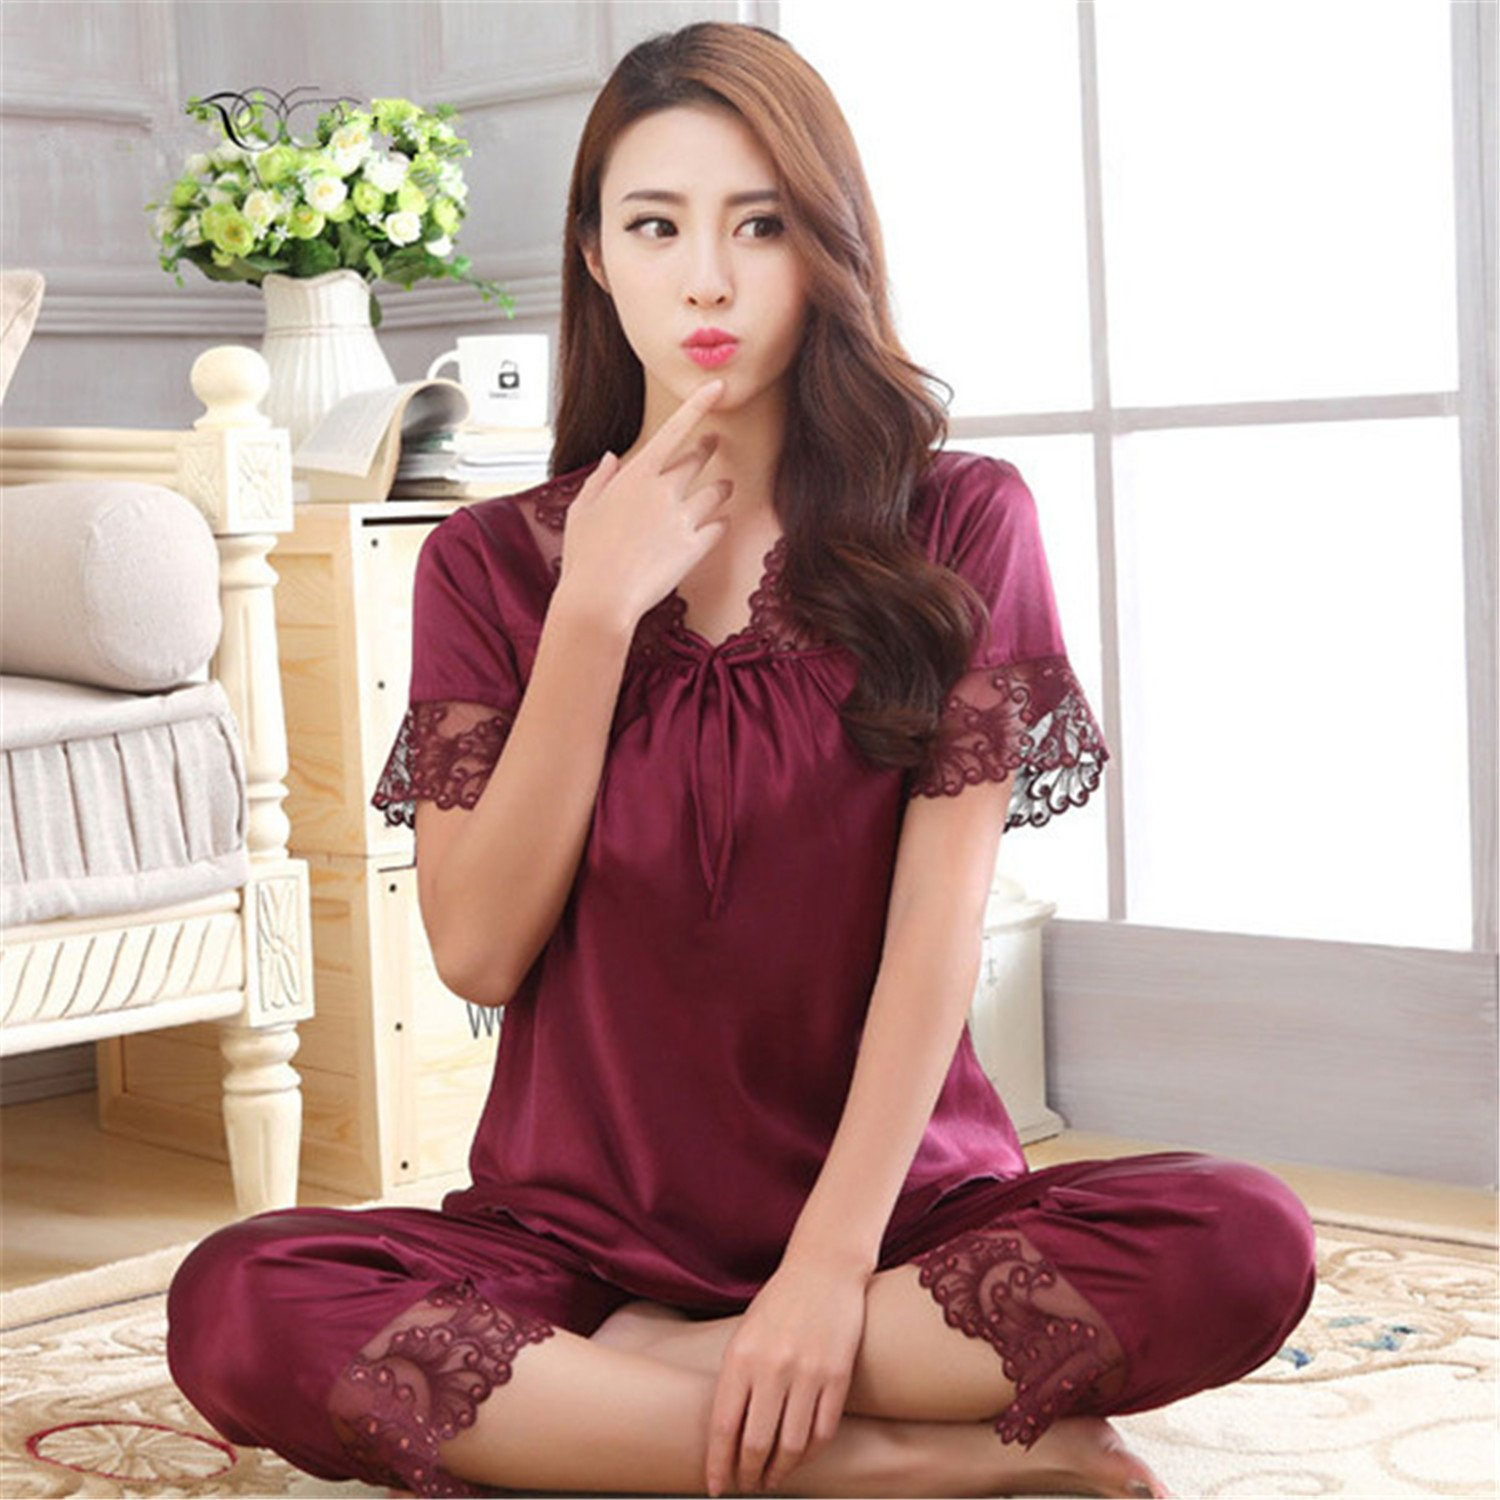 Michael Stevenson New Arrival Summer Women Short Sleeve Sleepwear Silk Pajama Set Two Pieces Sexy Hollow Out Lace V Neck Underwear Set 6 Colors Wine Red Xxl ...